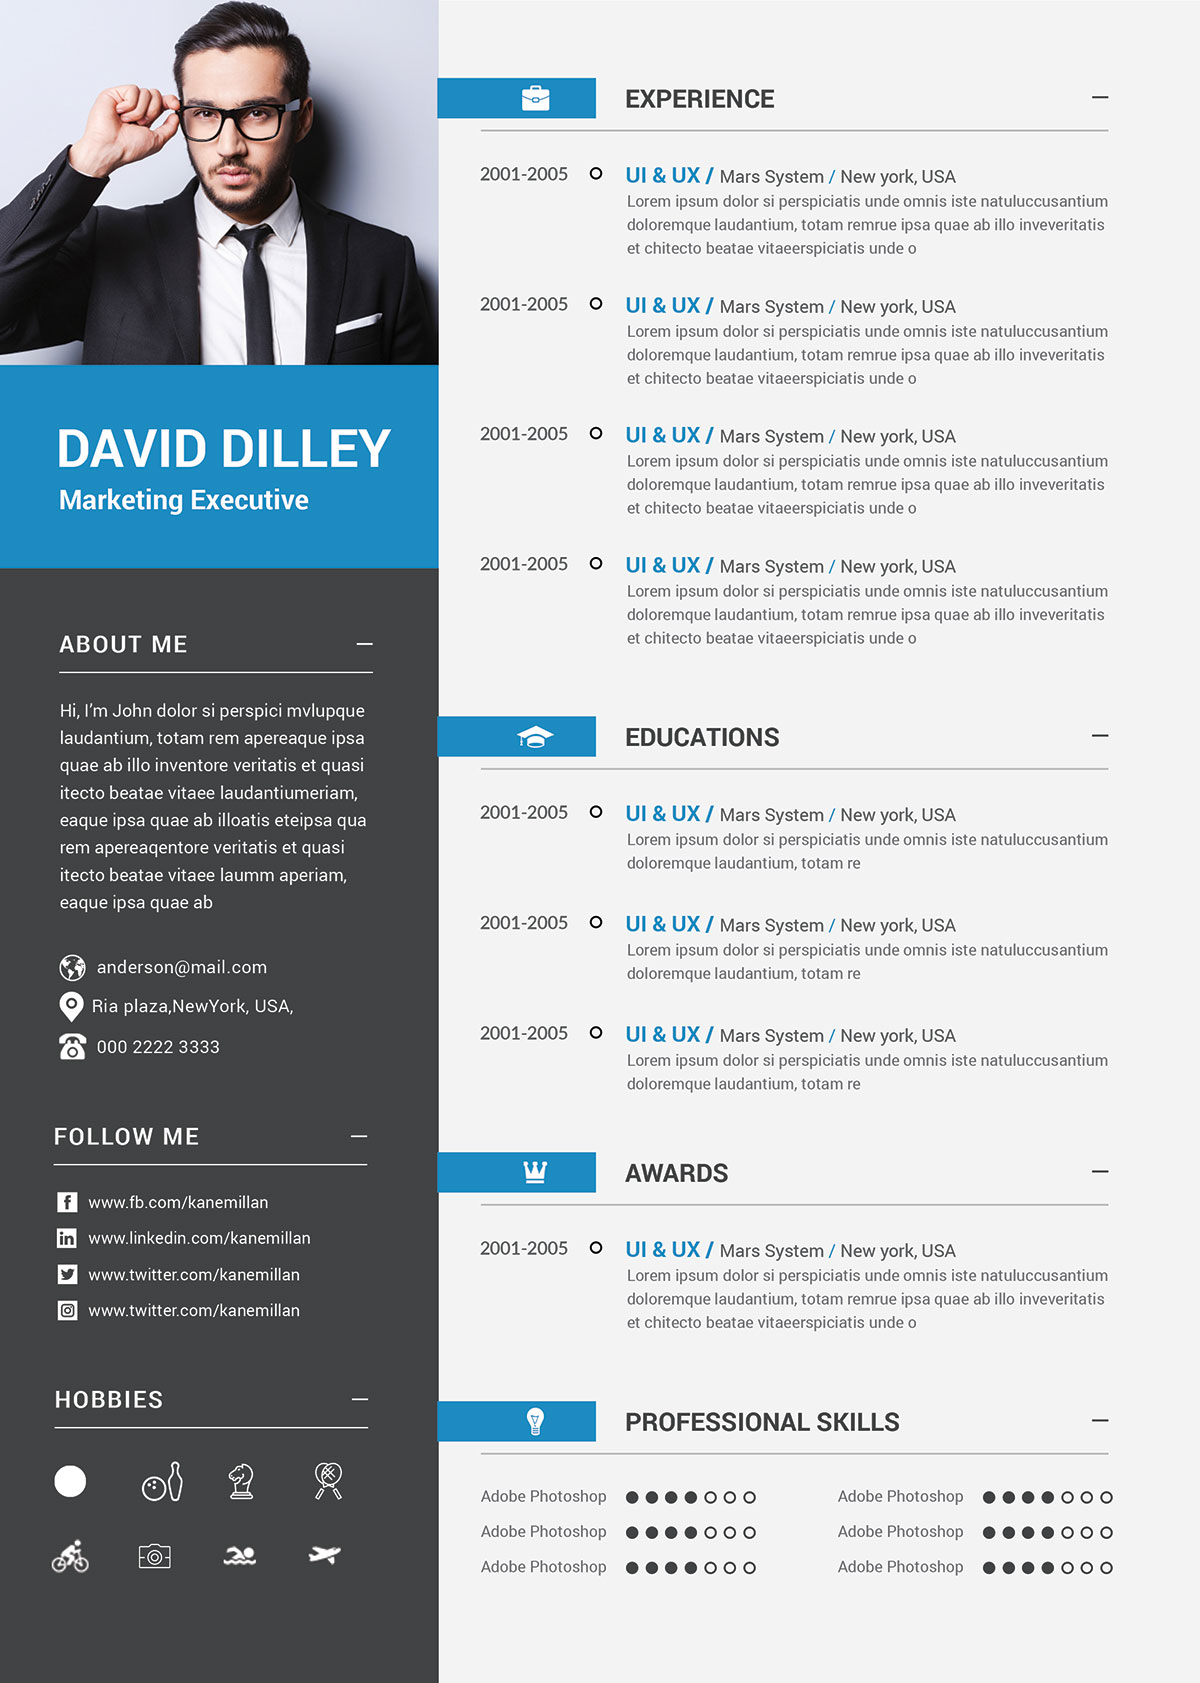 Free Professional CV Template  Cover Letter for Marketing Executives  Good Resume